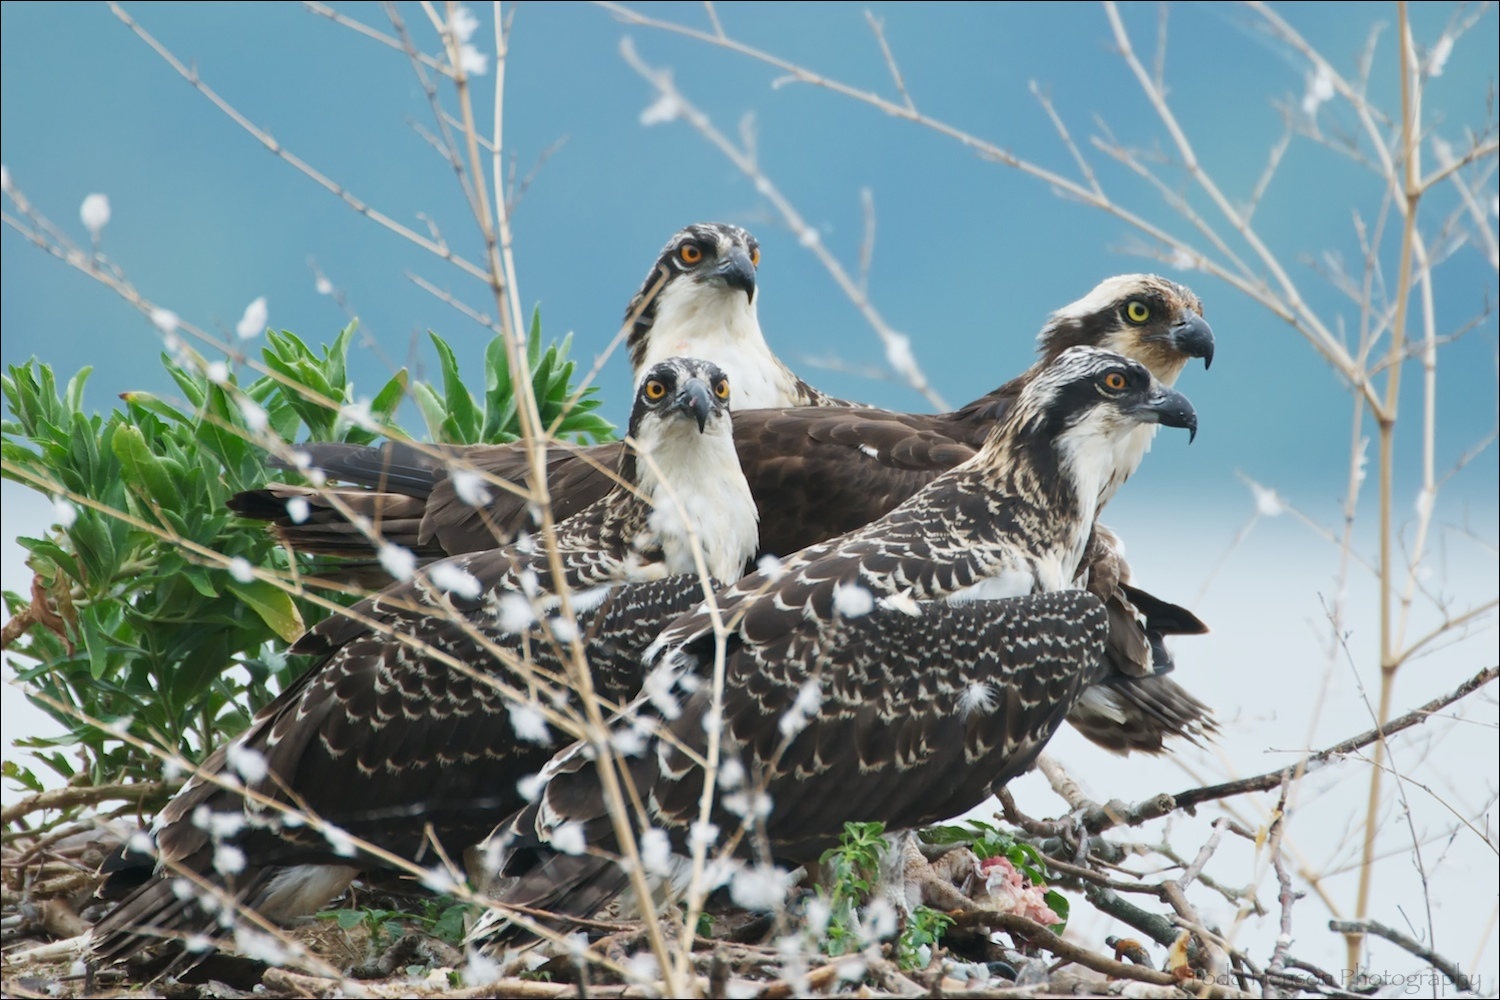 Osprey mother and three juveniles feeding on fish in nest. The juveniles have the more orange eyes, the mother's are more yellow. Also notice, the juvenile still have light colored feather tips, the adults are solid brown. The remains of the fish are at the foremost Osprey's feet.